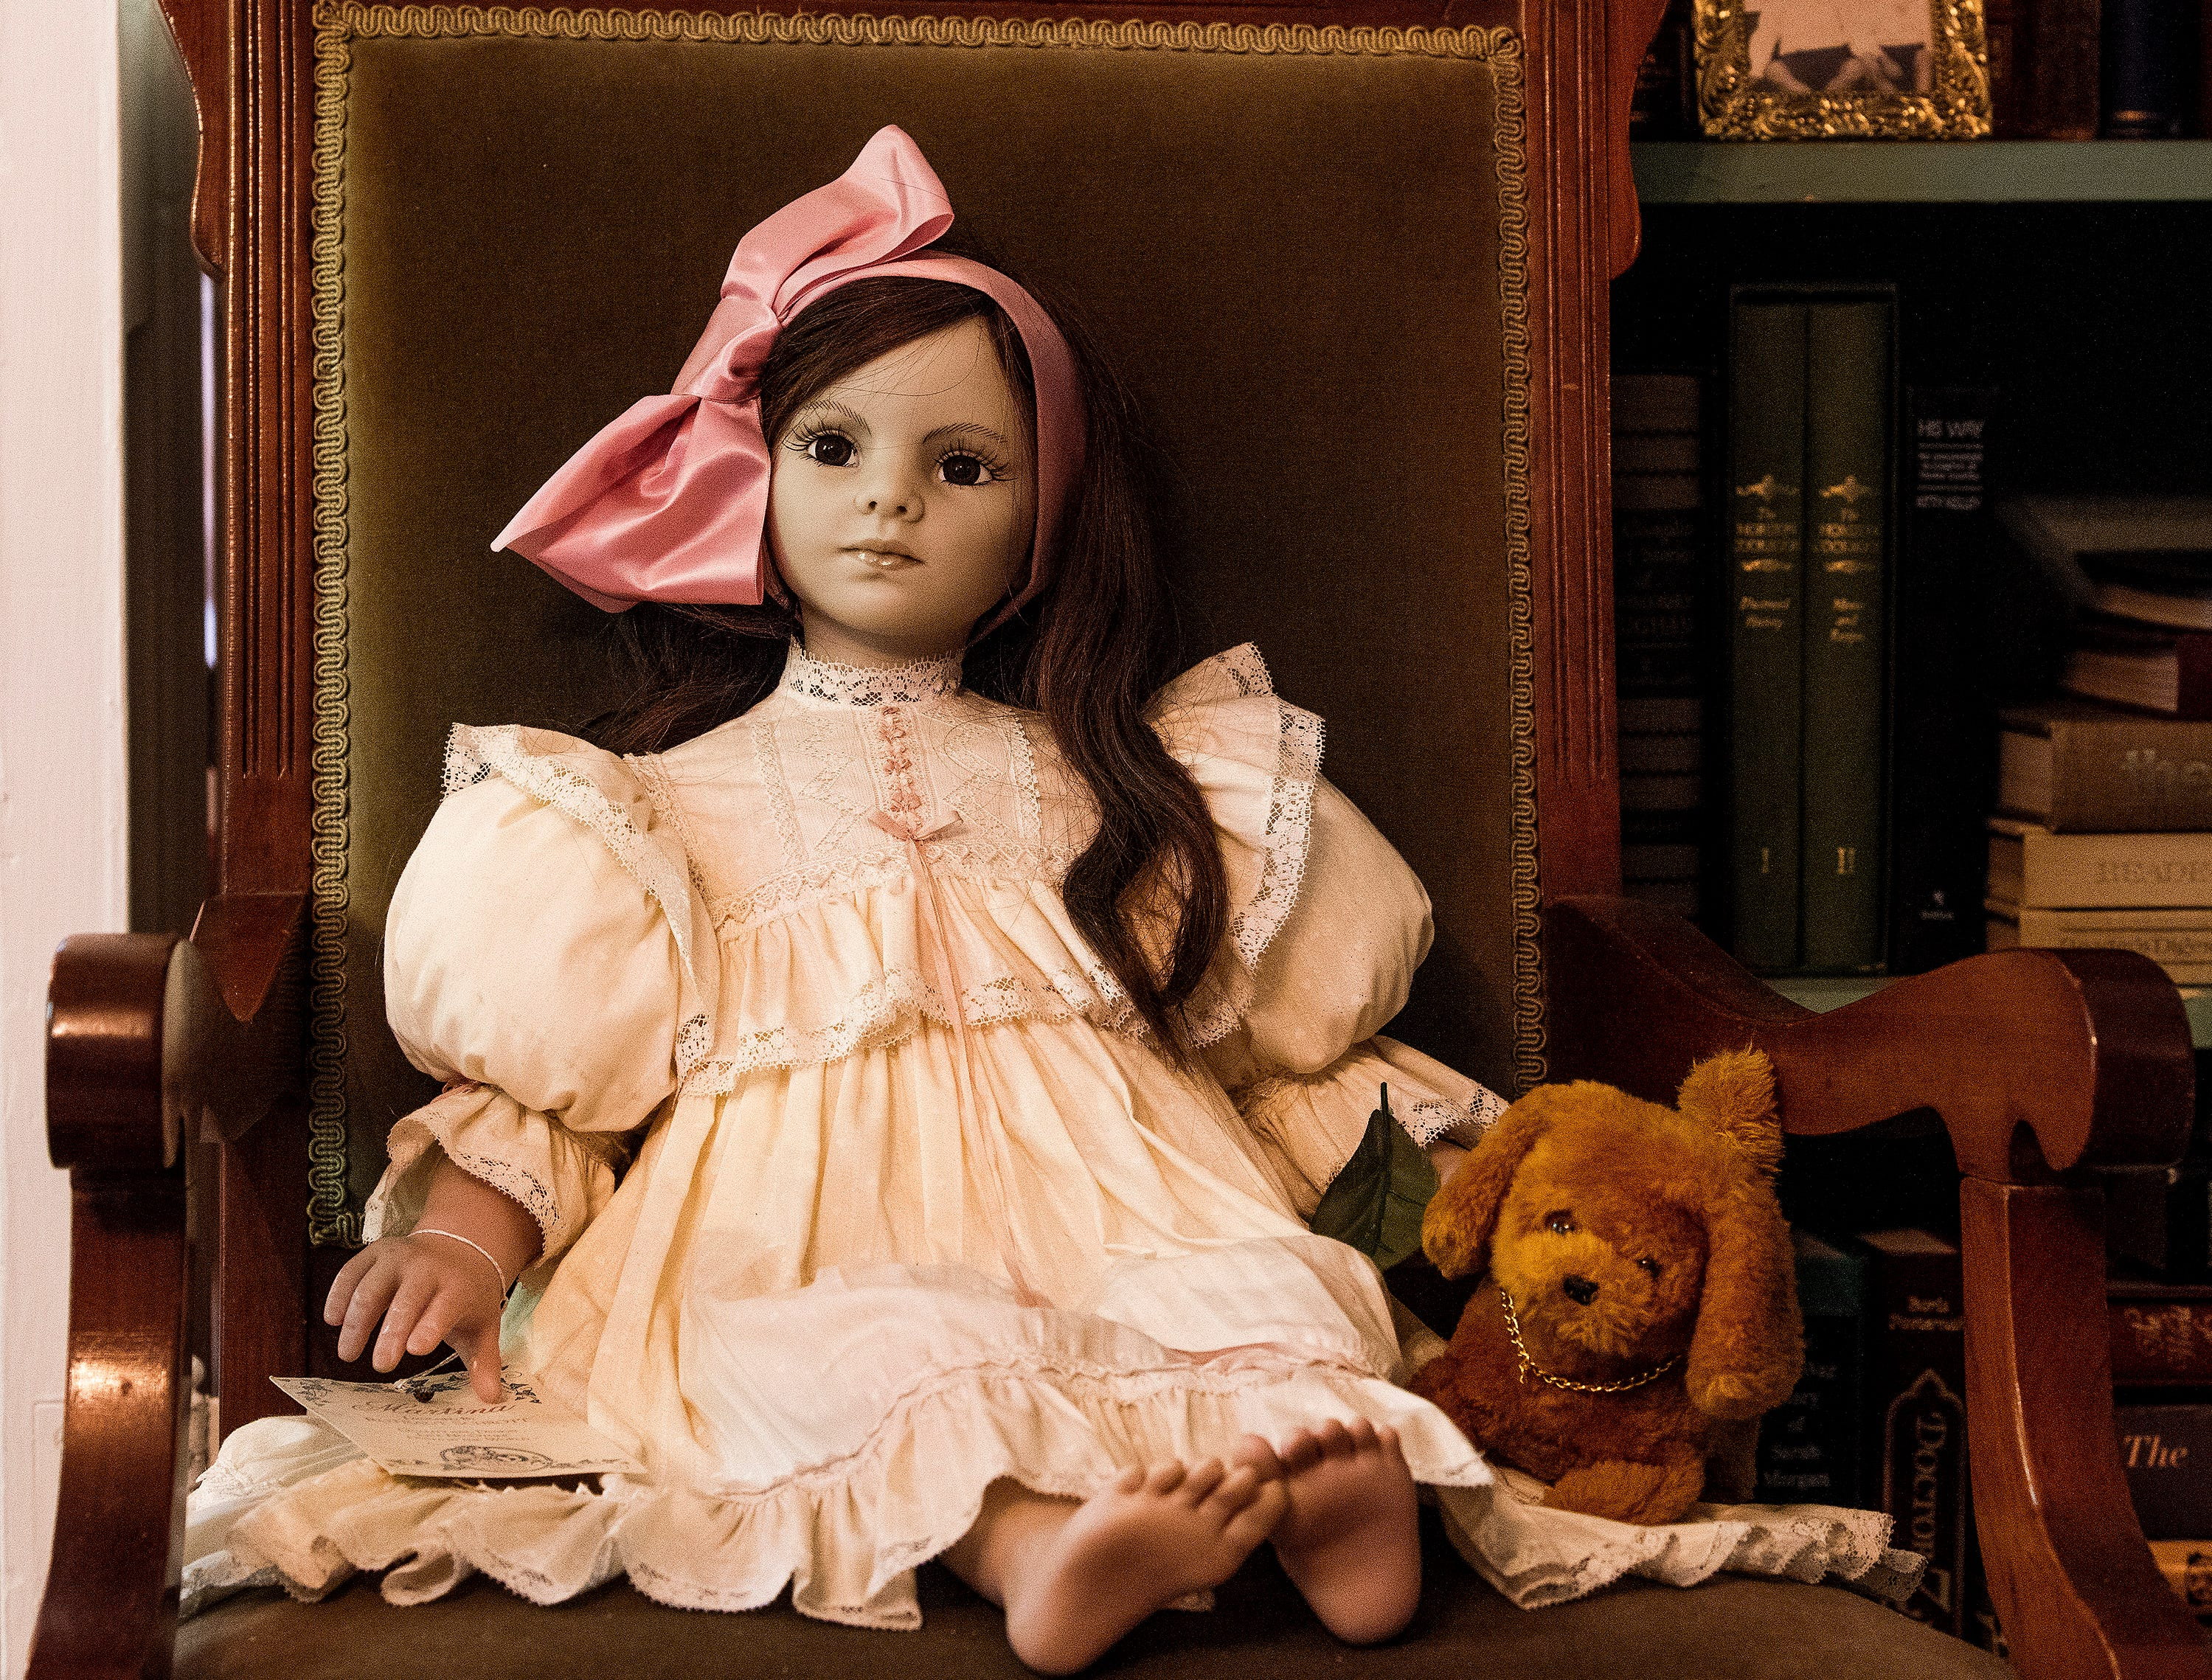 The doll collection of Eloise Downey, including one of her favorite dolls, is shown at her home in Montgomery, Ala., on Thursday November 15, 2018.